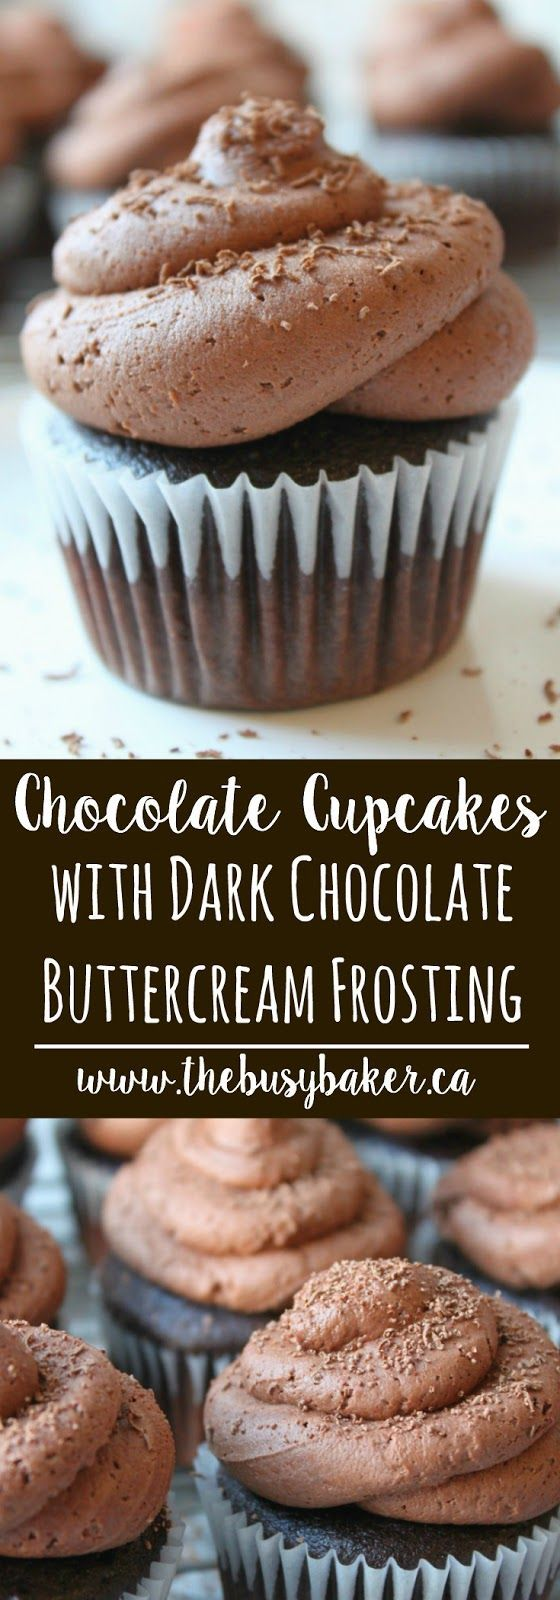 Best 10+ Best chocolate cupcakes ideas on Pinterest | Chocolate ...